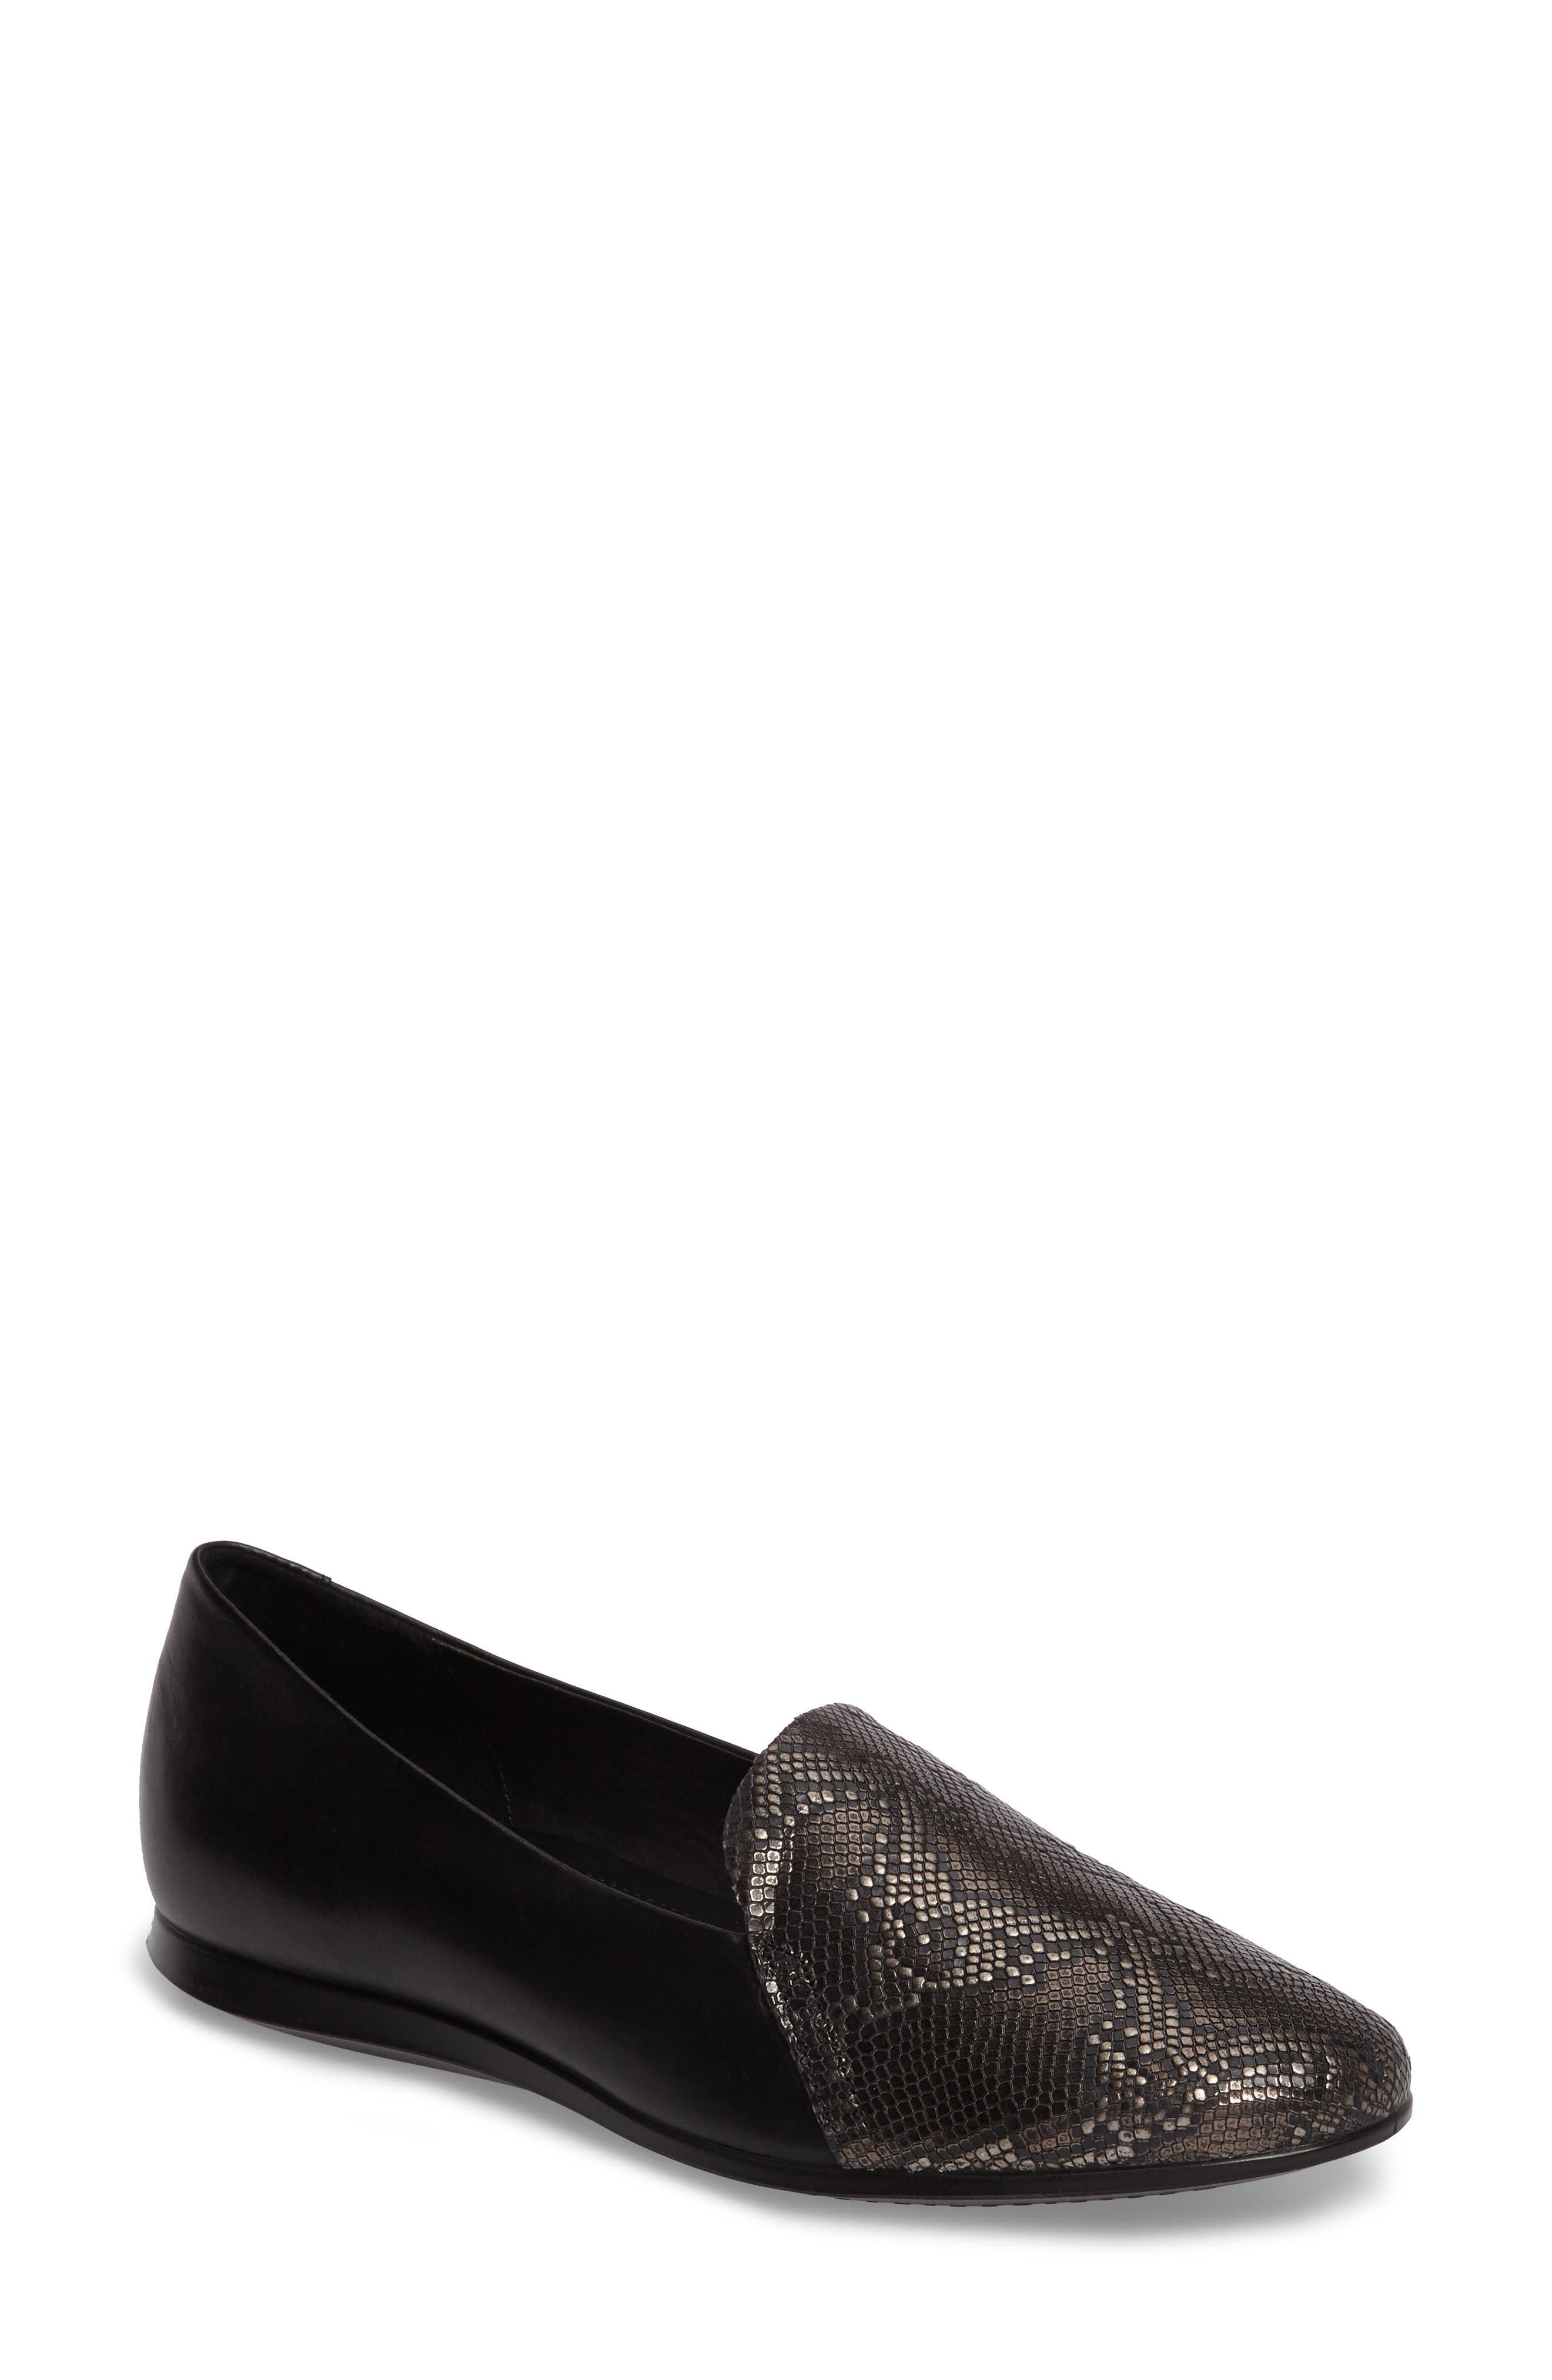 Touch 2.0 Scale Embossed Loafer Flat,                             Main thumbnail 1, color,                             DARK SHADOW LEATHER